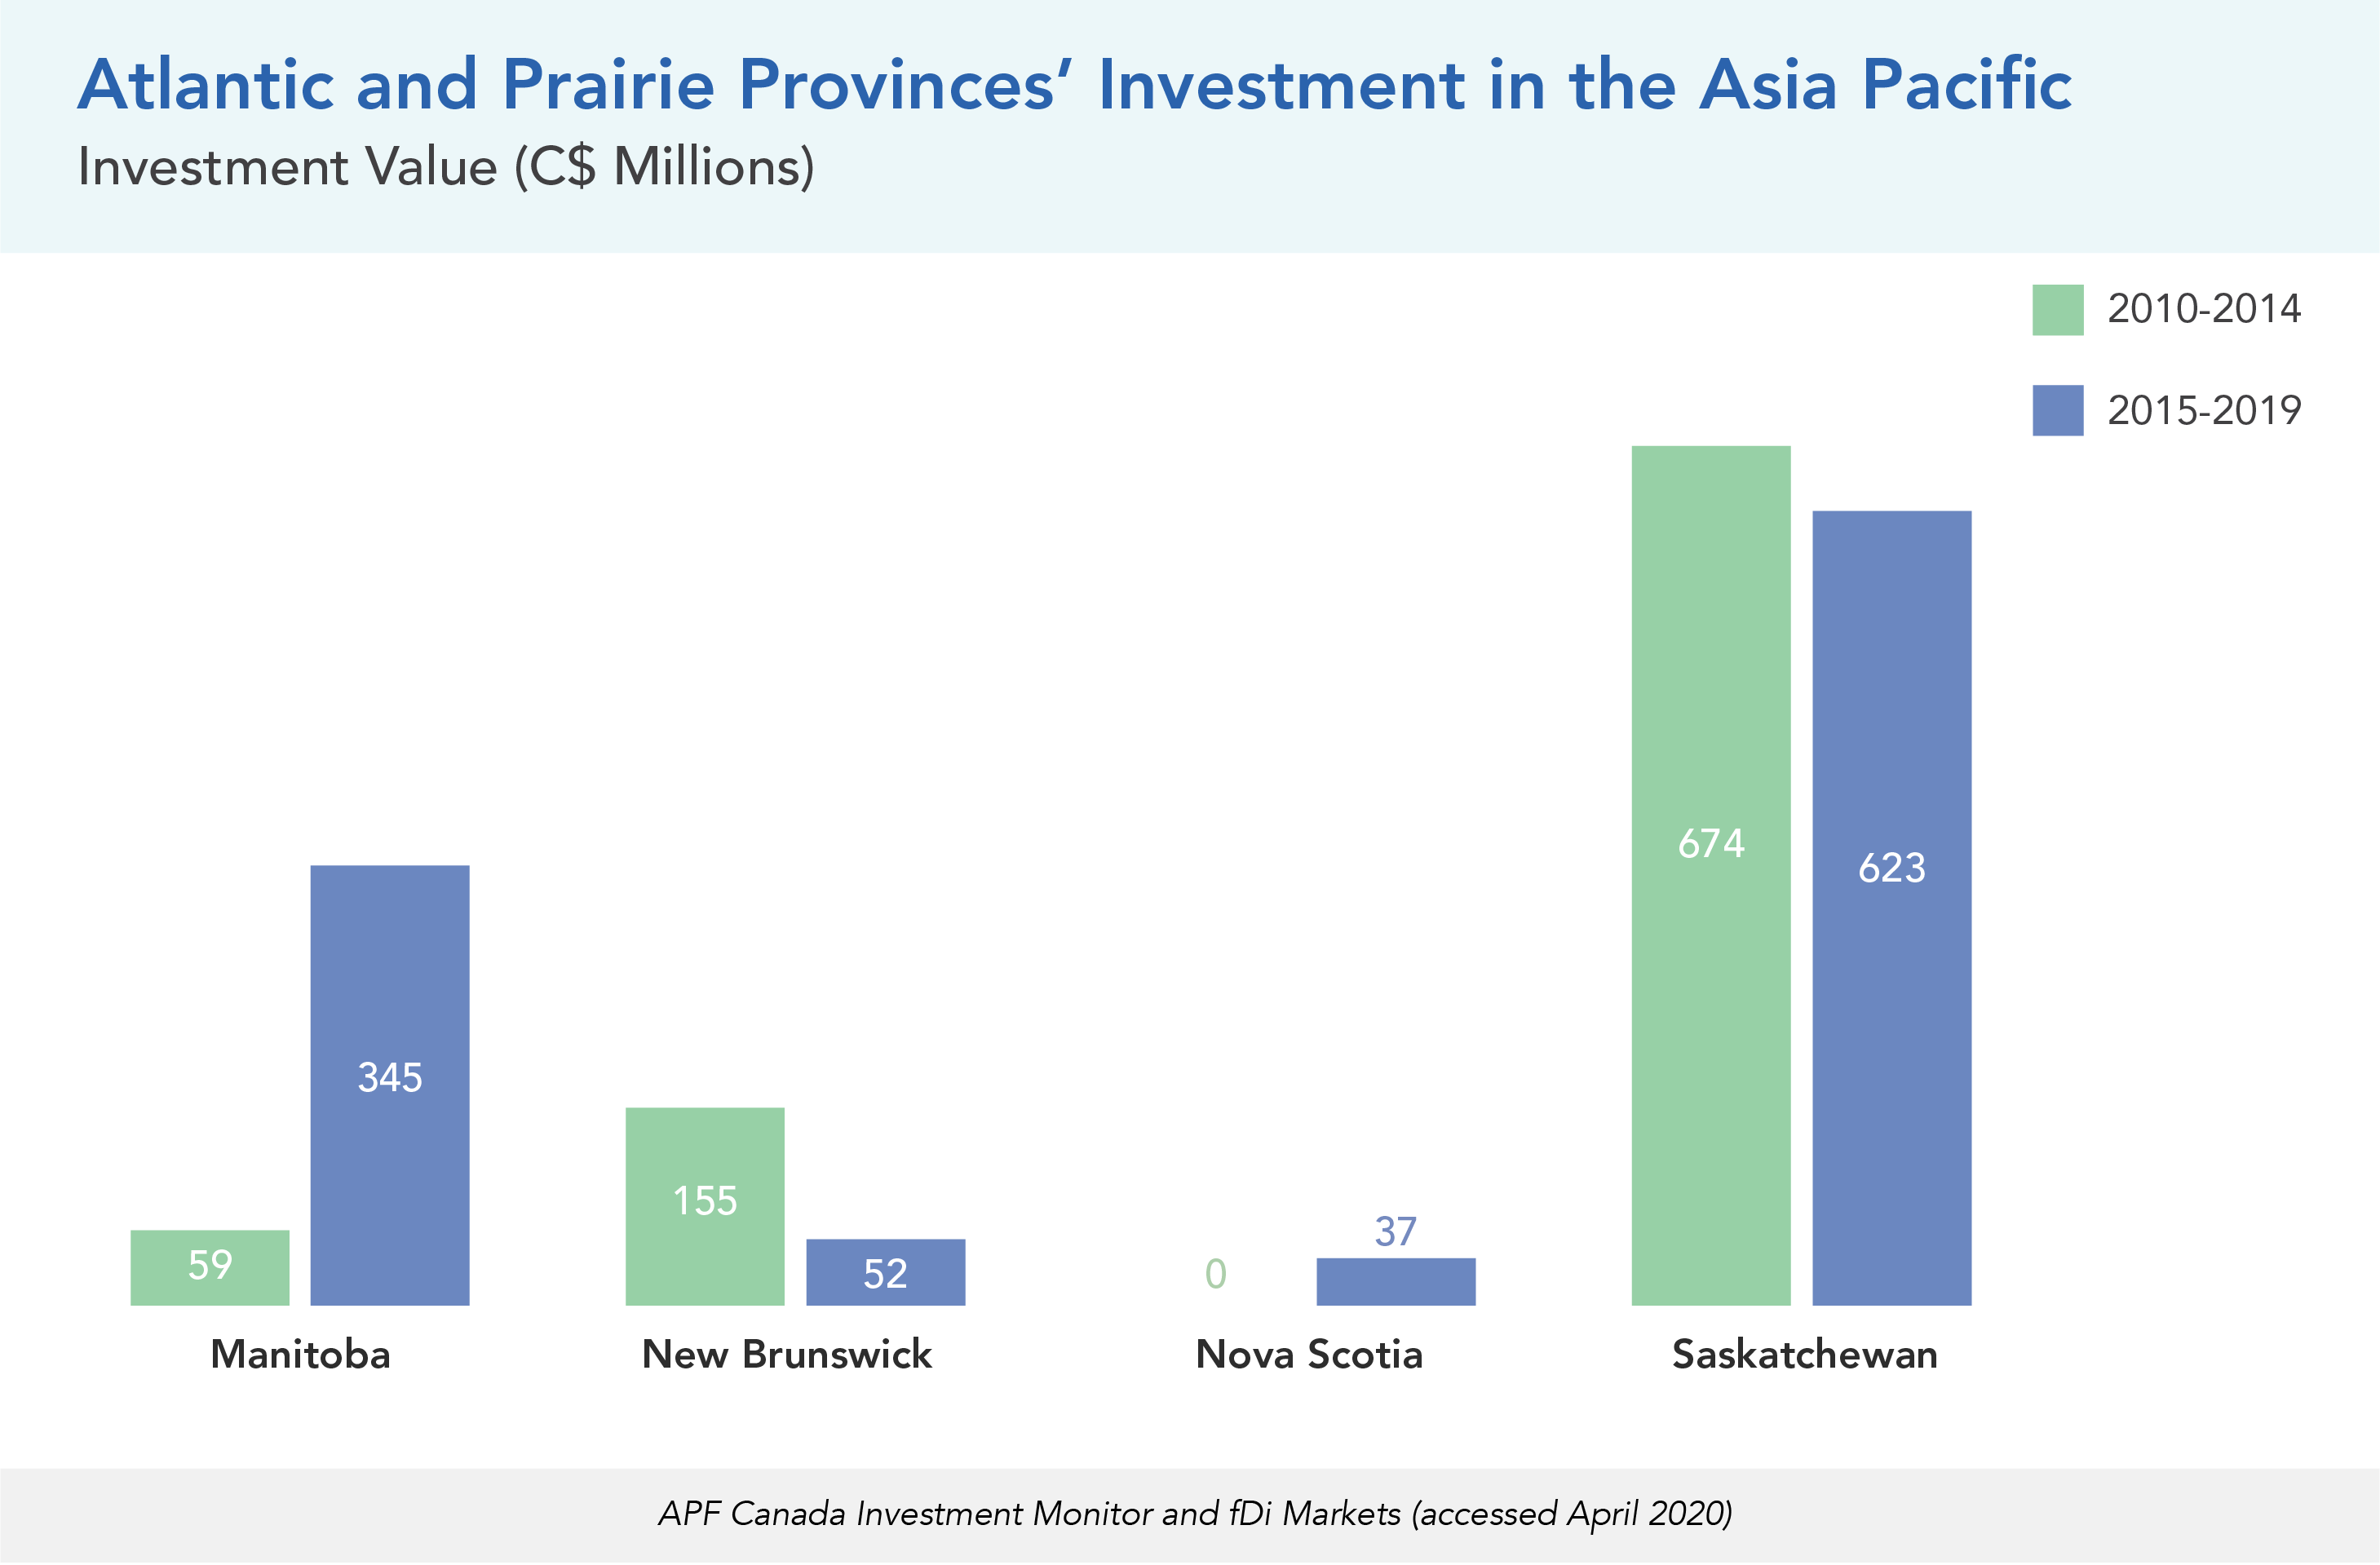 Atlantic and Prairie Provinces' Investment in the Asia Pacific